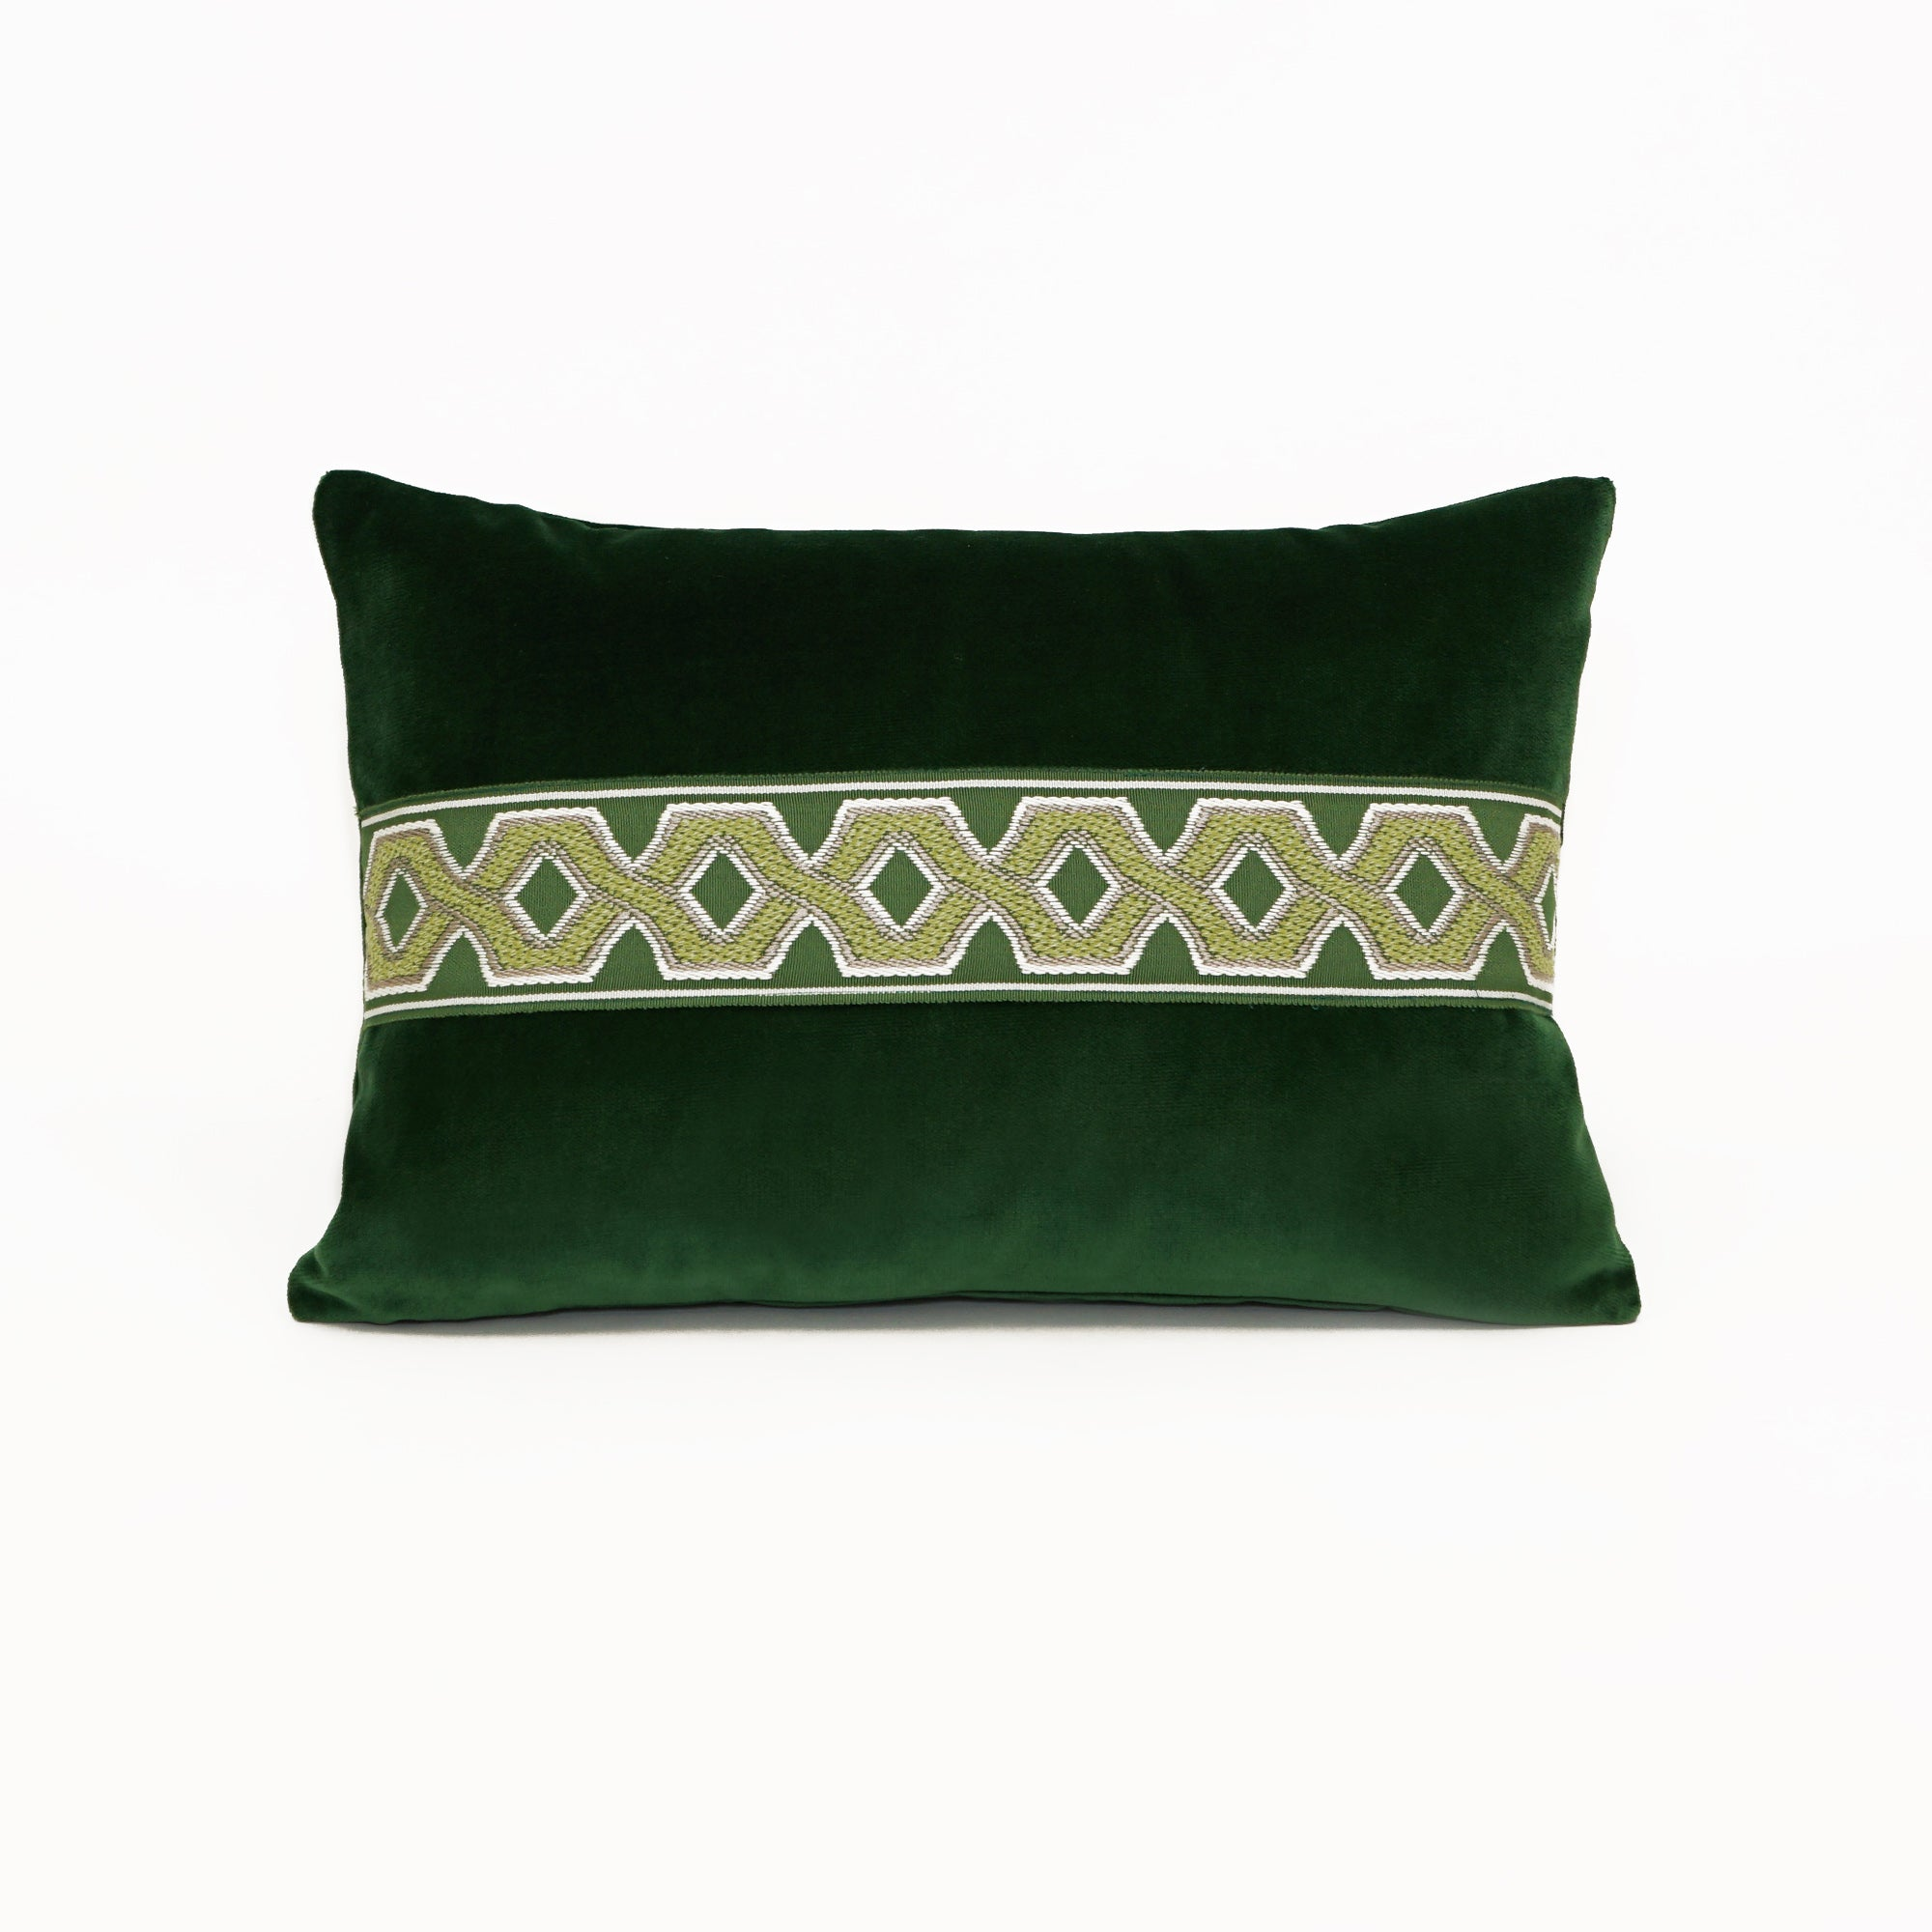 Lounge Kelly Green With Decorative Tape CL40 - Lumbar